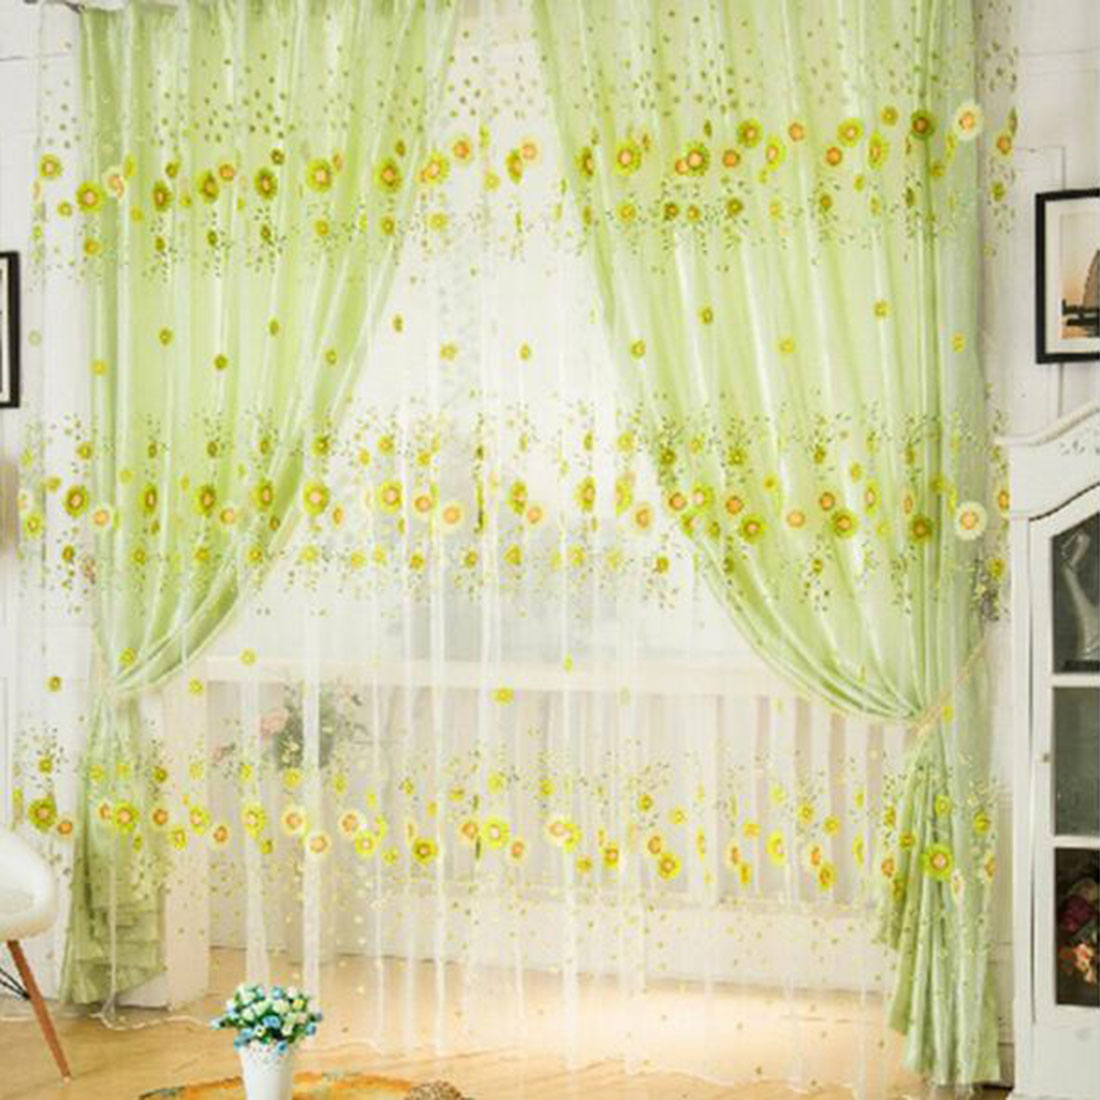 Sunflower Decoration For Kitchen Compare Prices On Sunflower Kitchens Online Shopping Buy Low